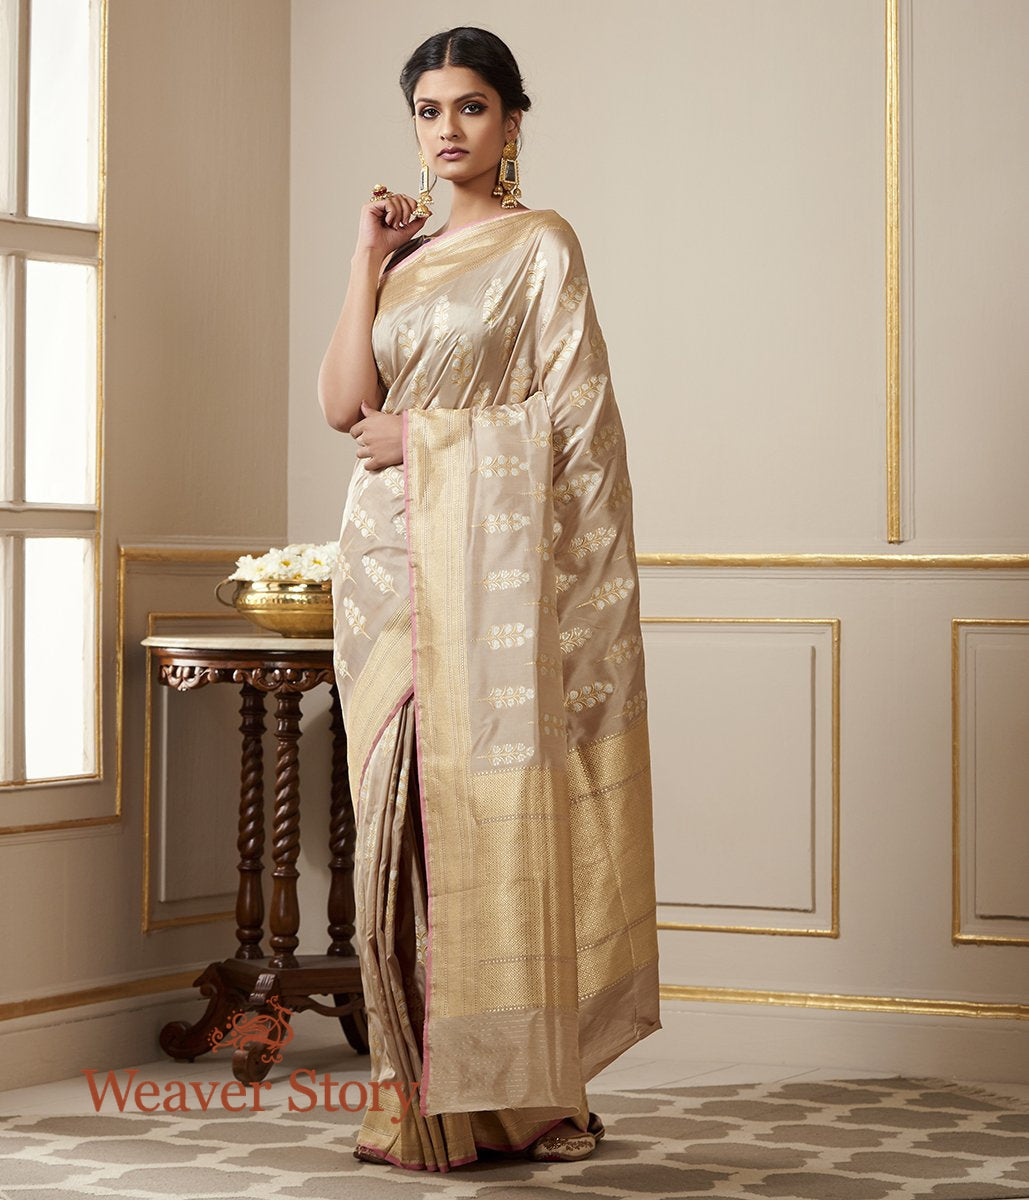 Handwoven Beige and Grey Dual Tone Saree with Sona Rupa Zari Boota